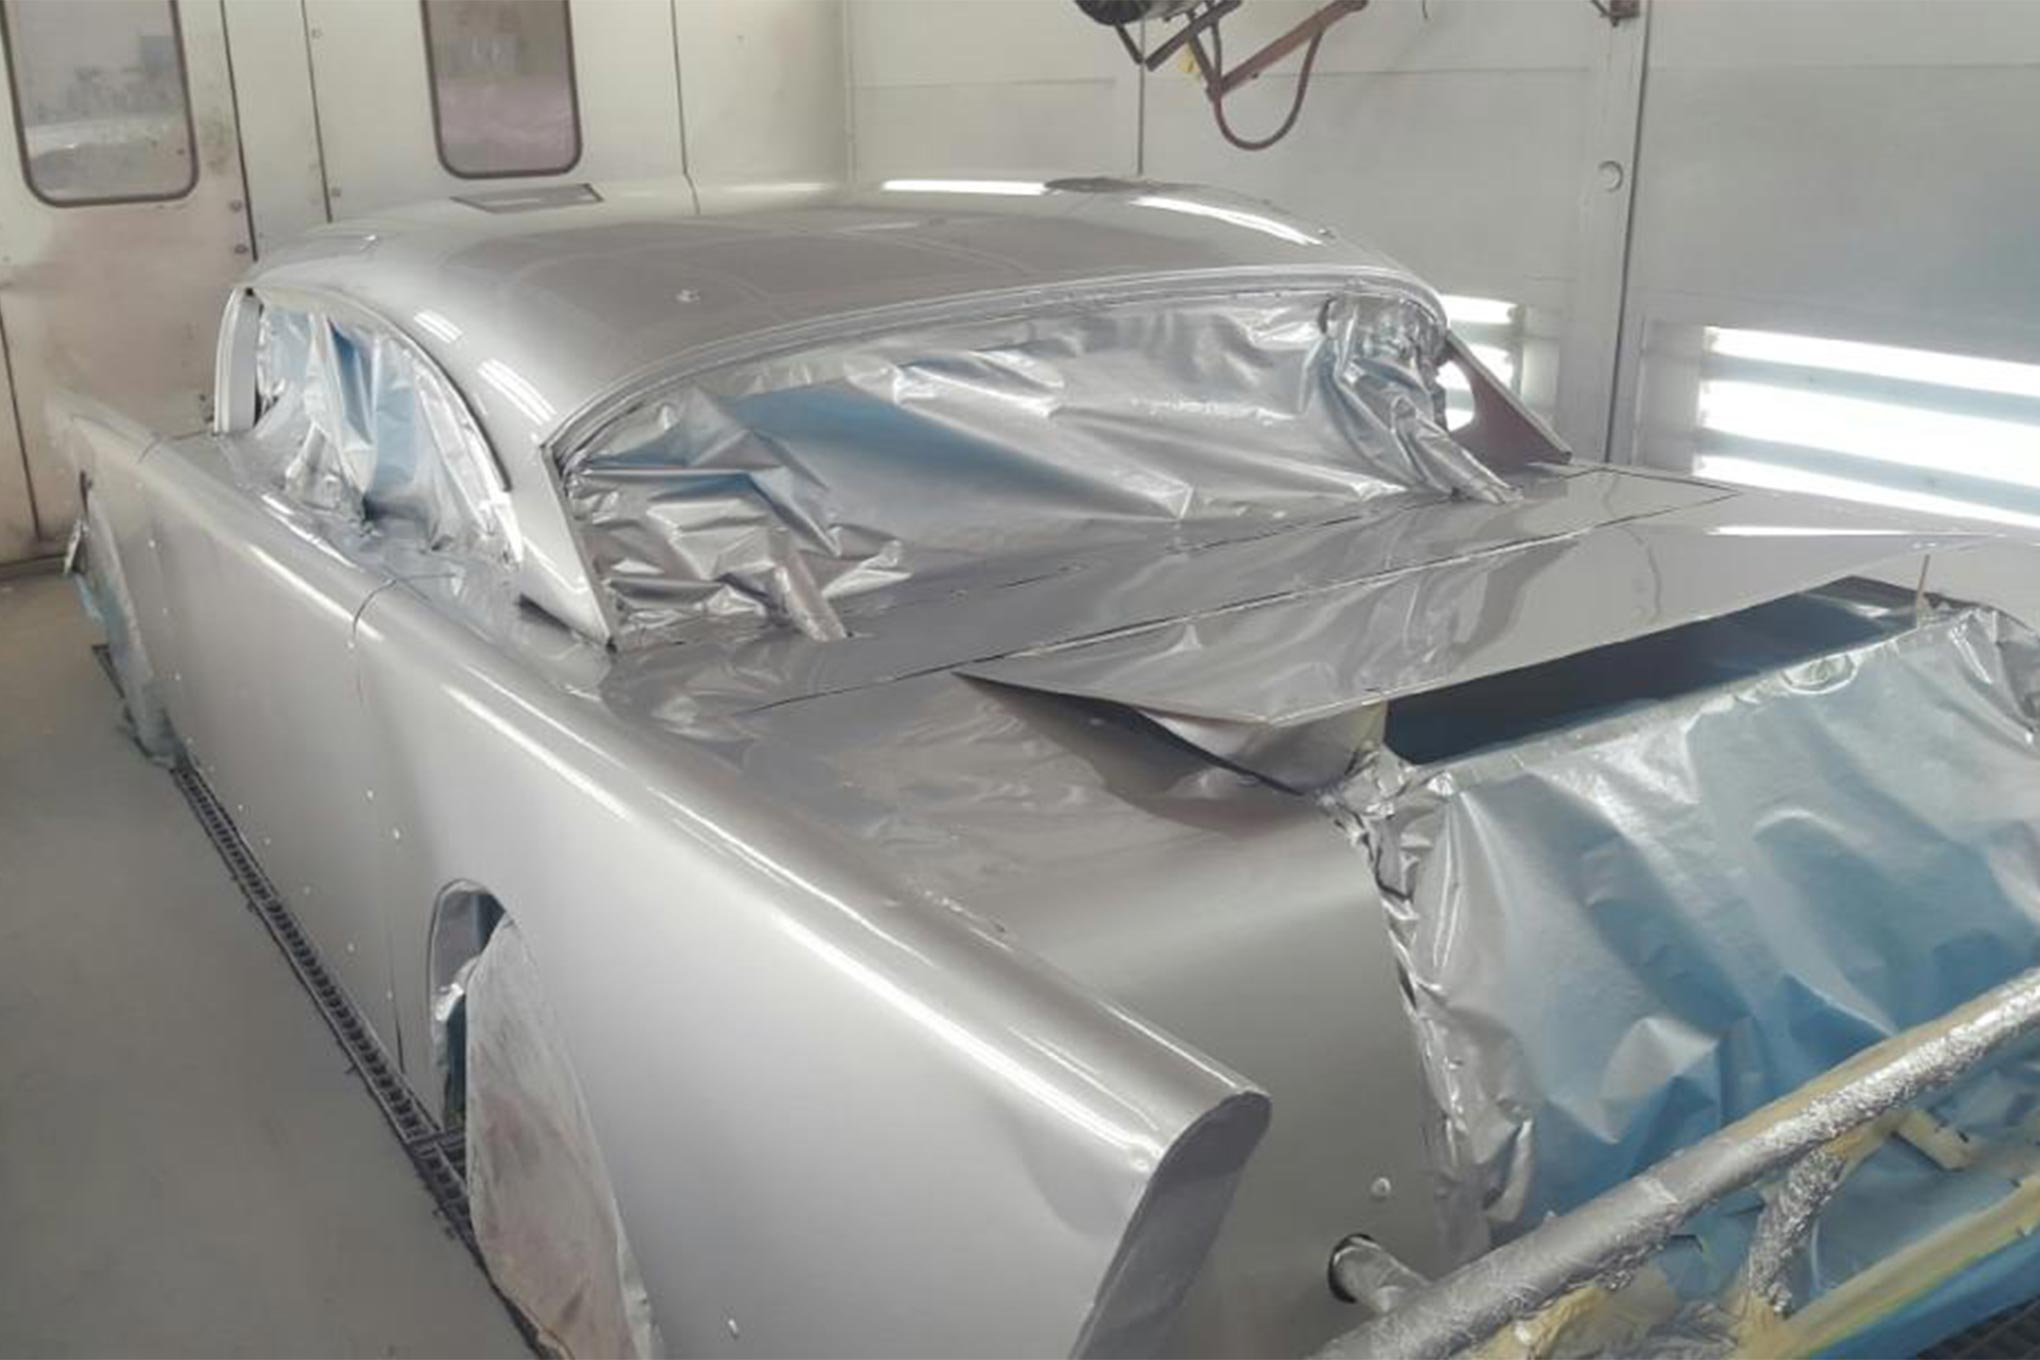 The Bel Aire got a silver coat.